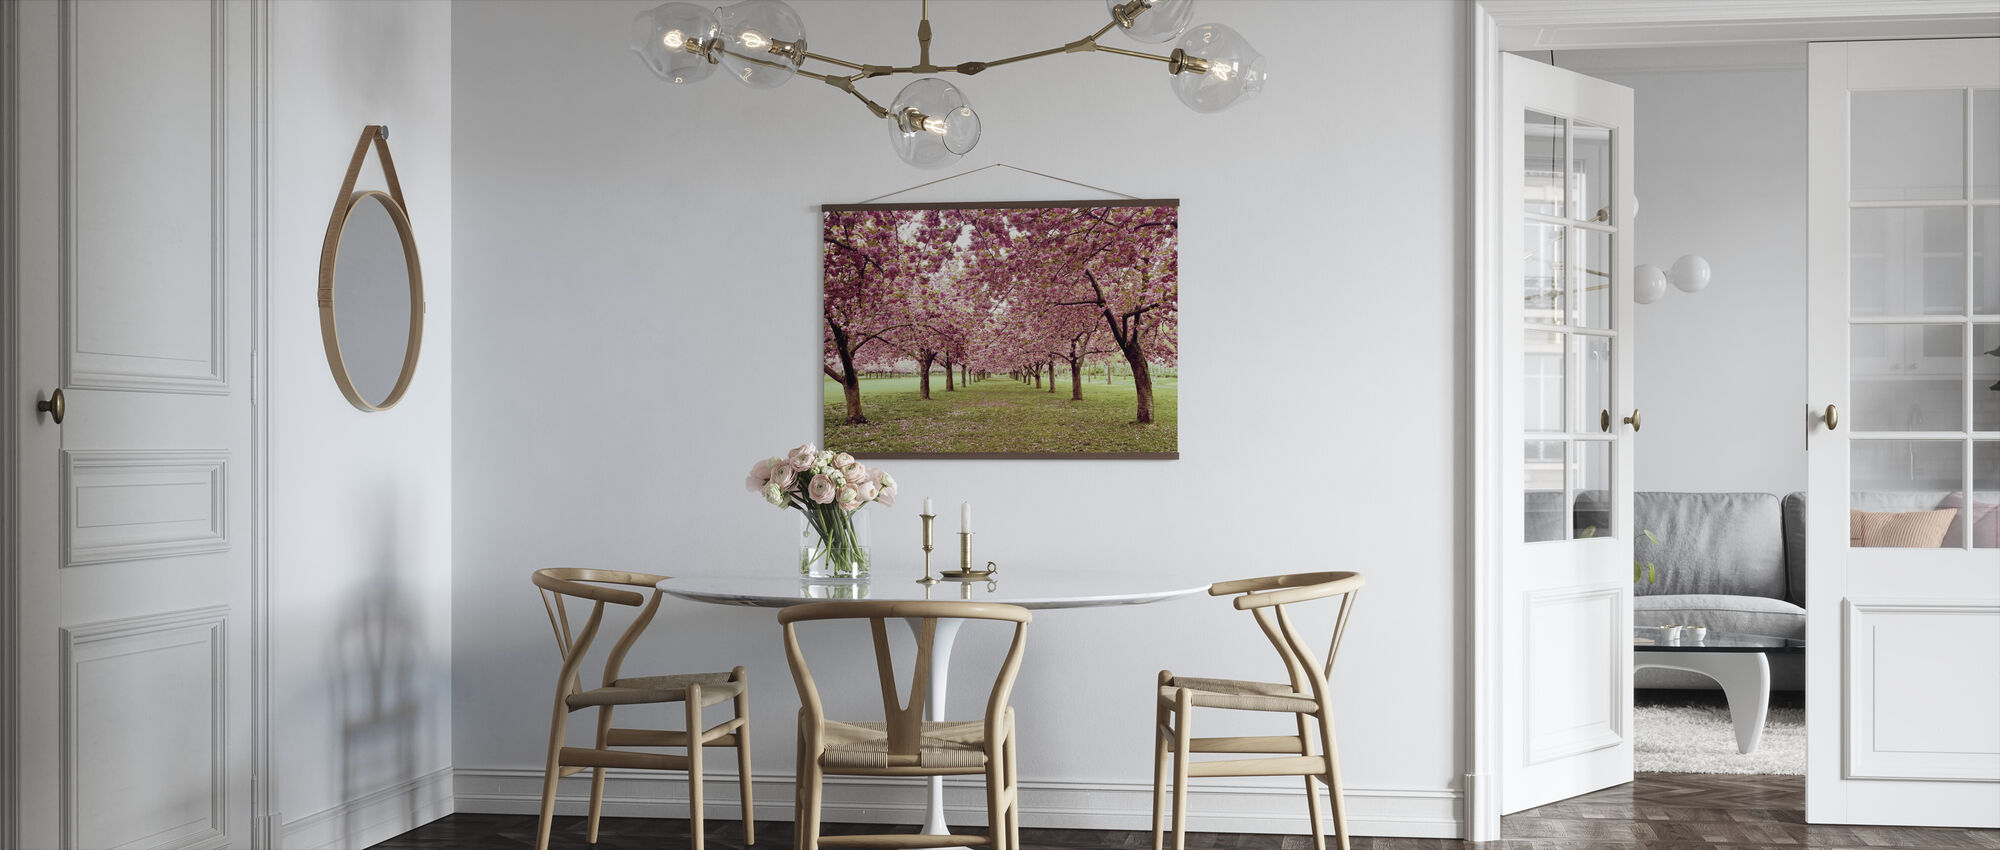 Hall of Cherries - Poster - Kitchen